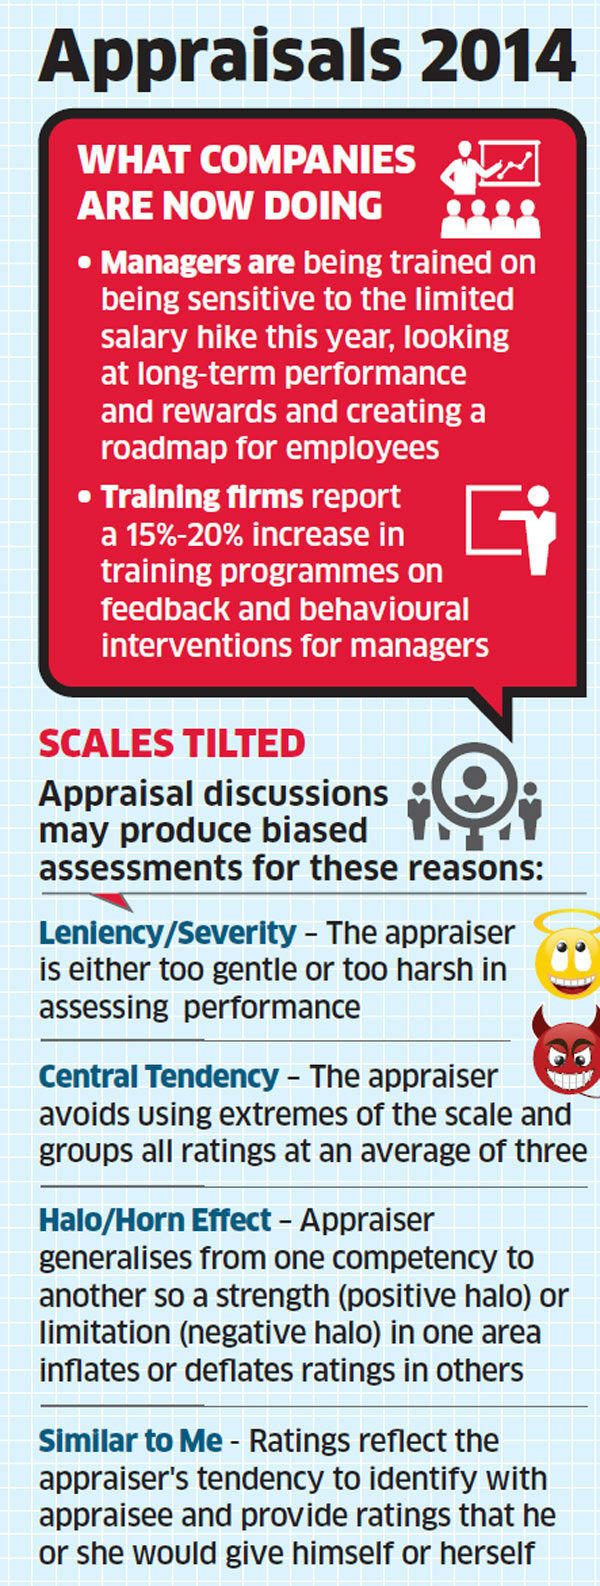 Companies creating mechanisms to enable fair appraisal process